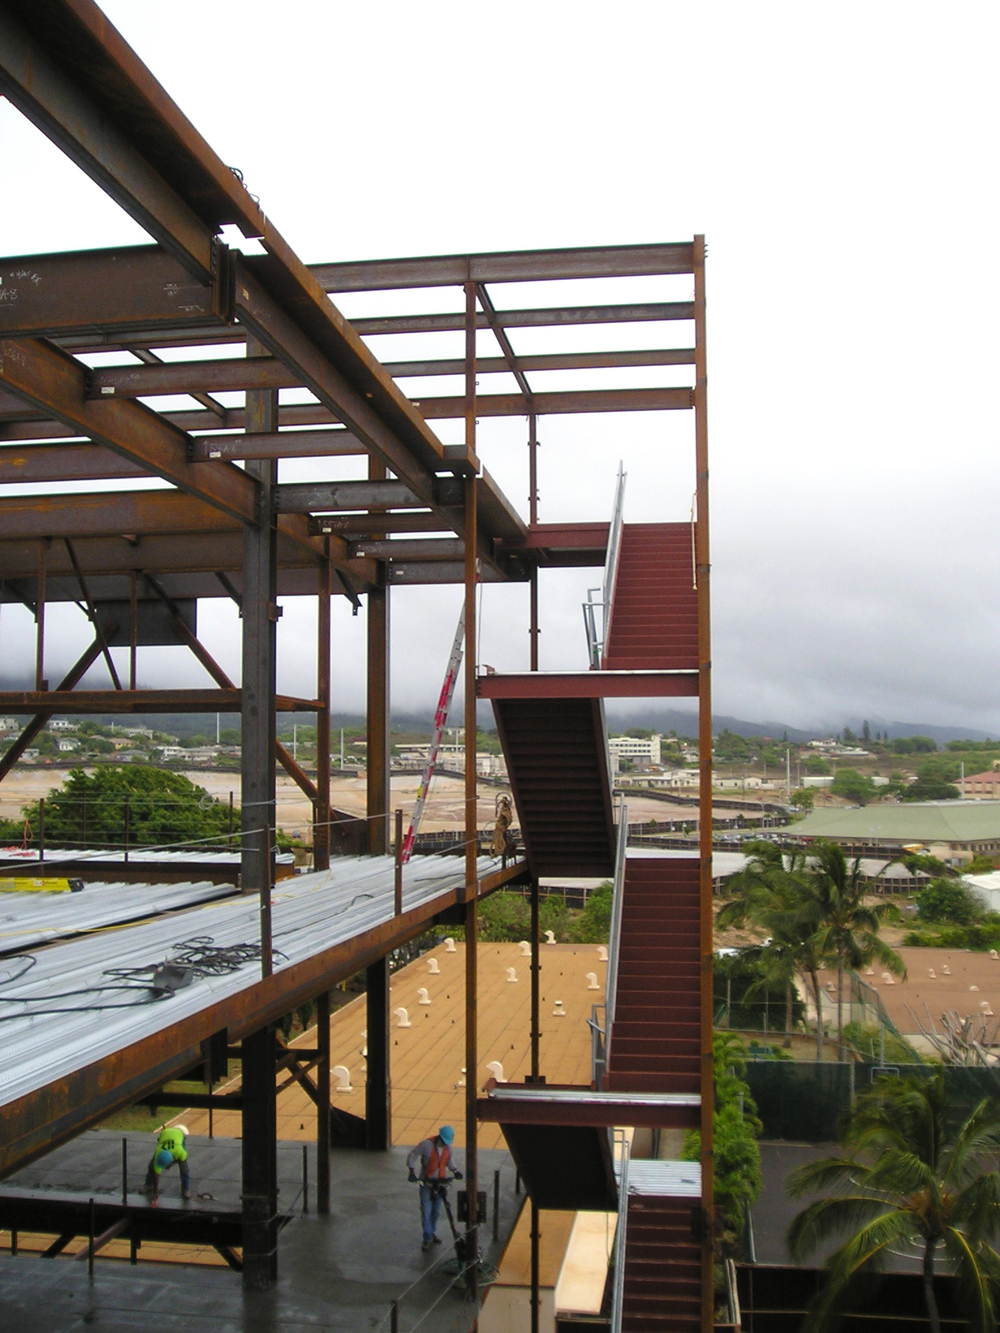 maui-memorial-hospital-medical-office-building-rf-stearns-structural-steel-construction-3.jpg